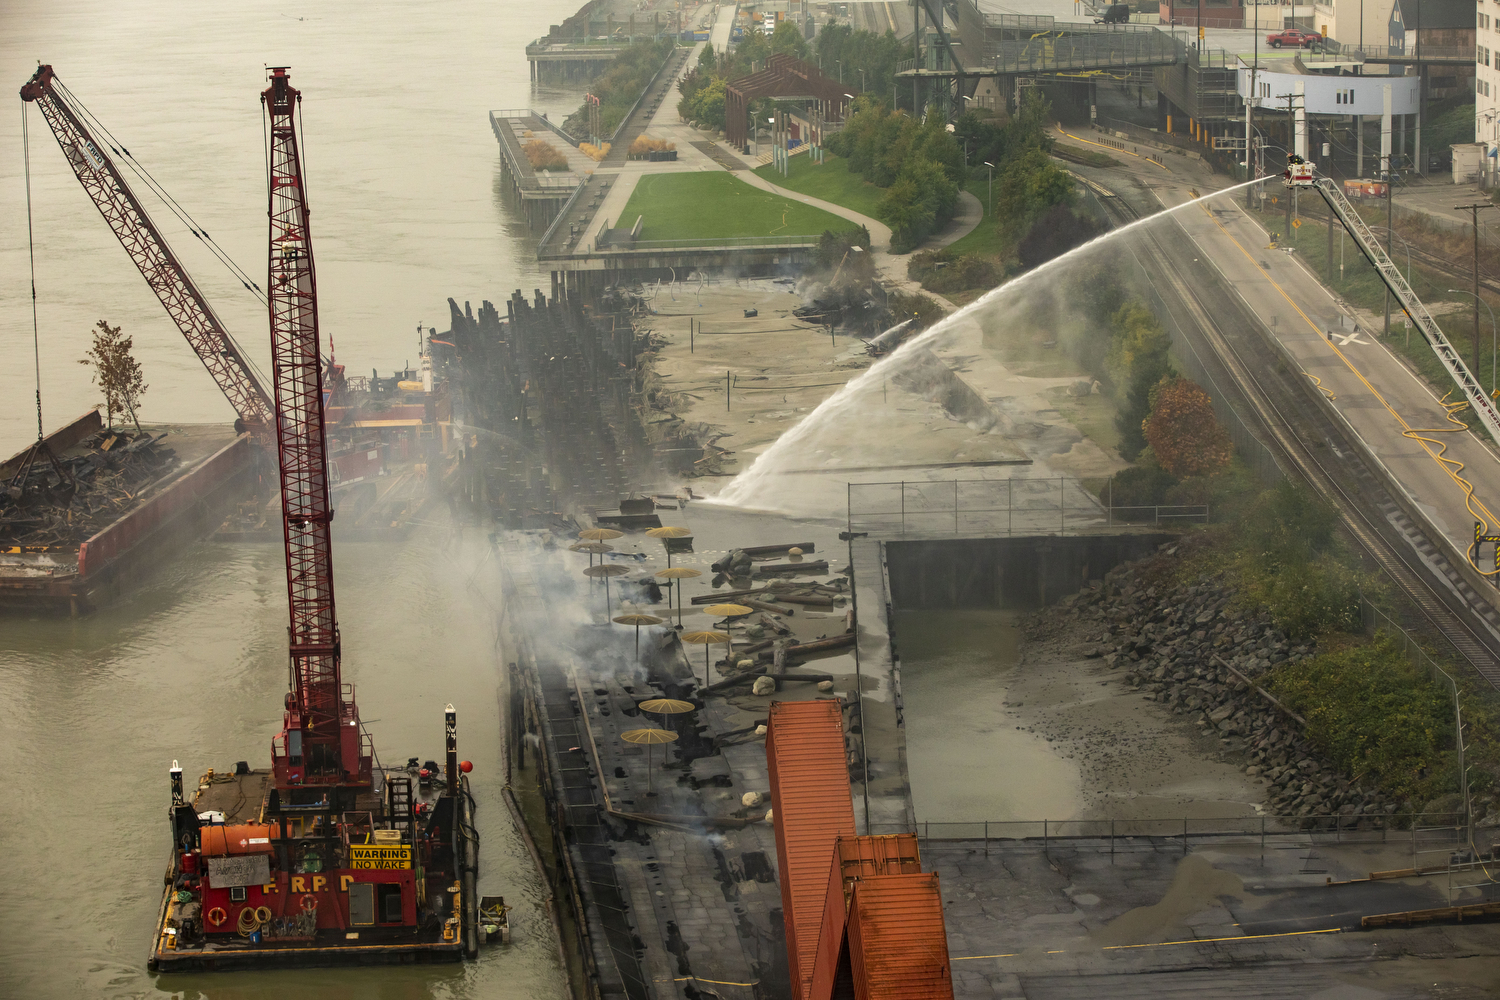 Fire crews work to put out a fire under the historic New Westminster Pier in New Westminster, B.C., on Sept. 16, 2020. It continued to smoulder for 11 days. Westminster Pier Park is expected to re-open in February 2021. (Ben Nelms/CBC Vancouver)